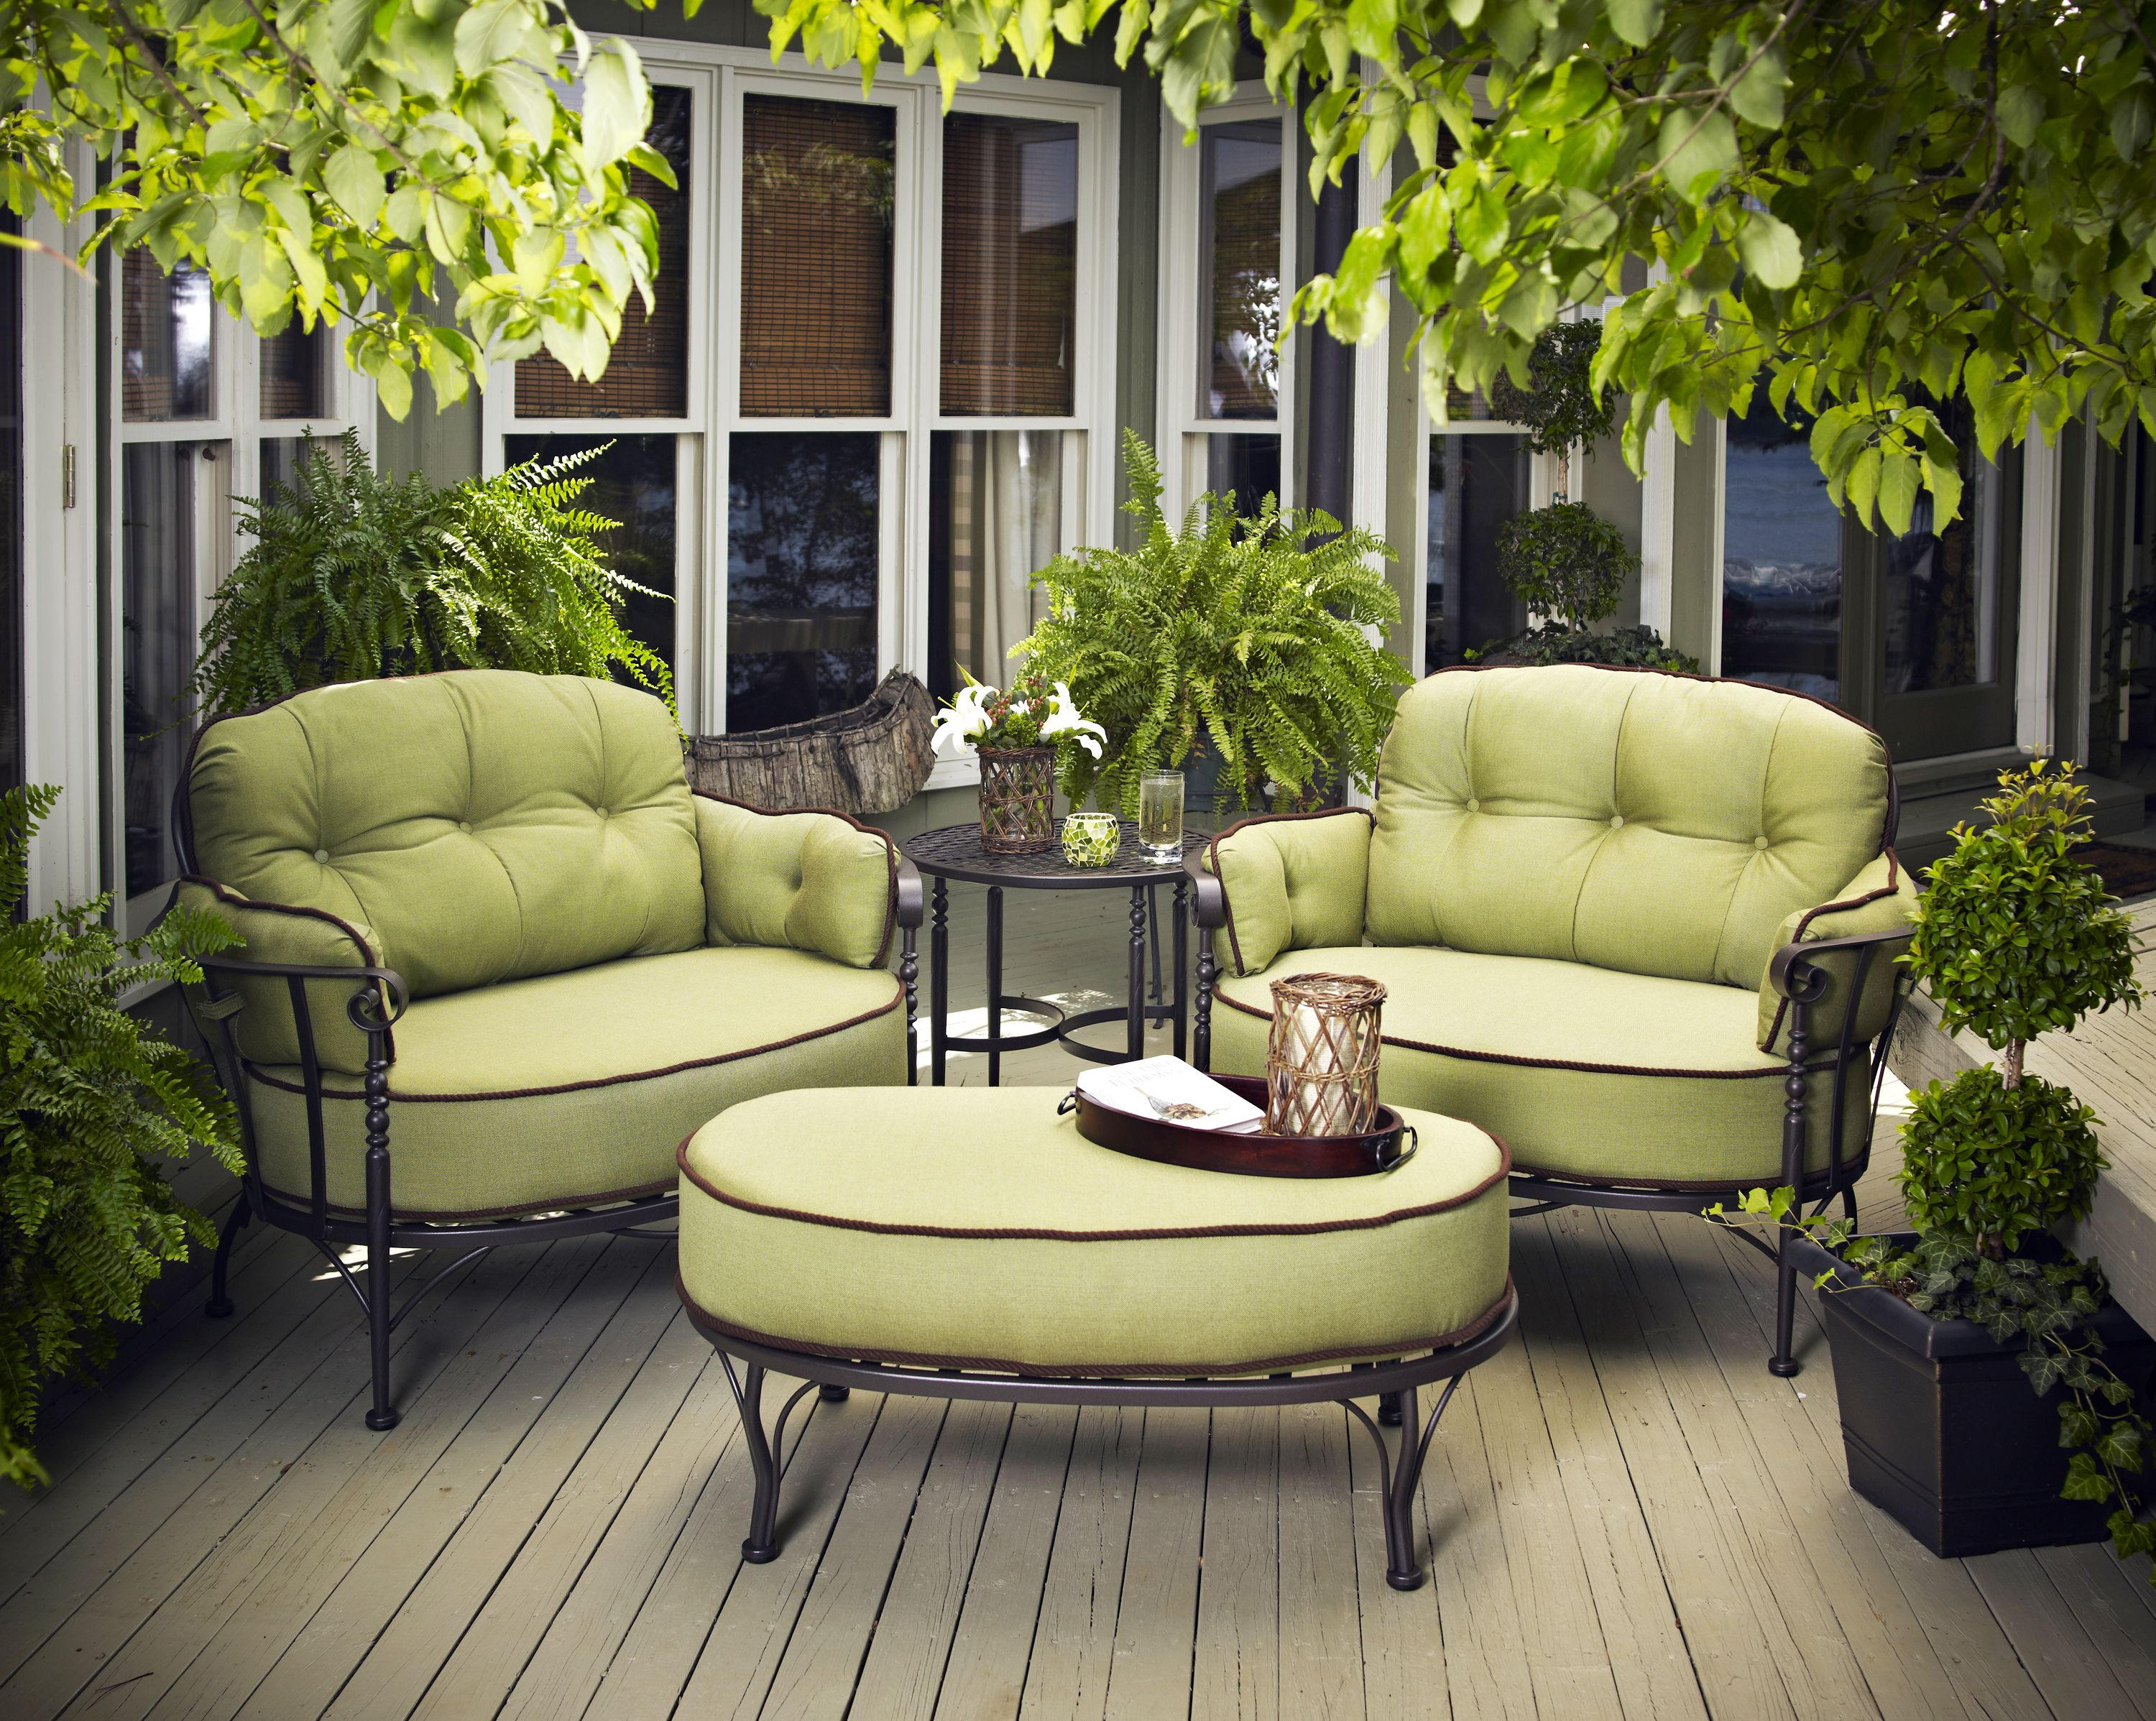 Meadowcraft Athens Outdoor Cuddle Chair At Miskelly Furniture